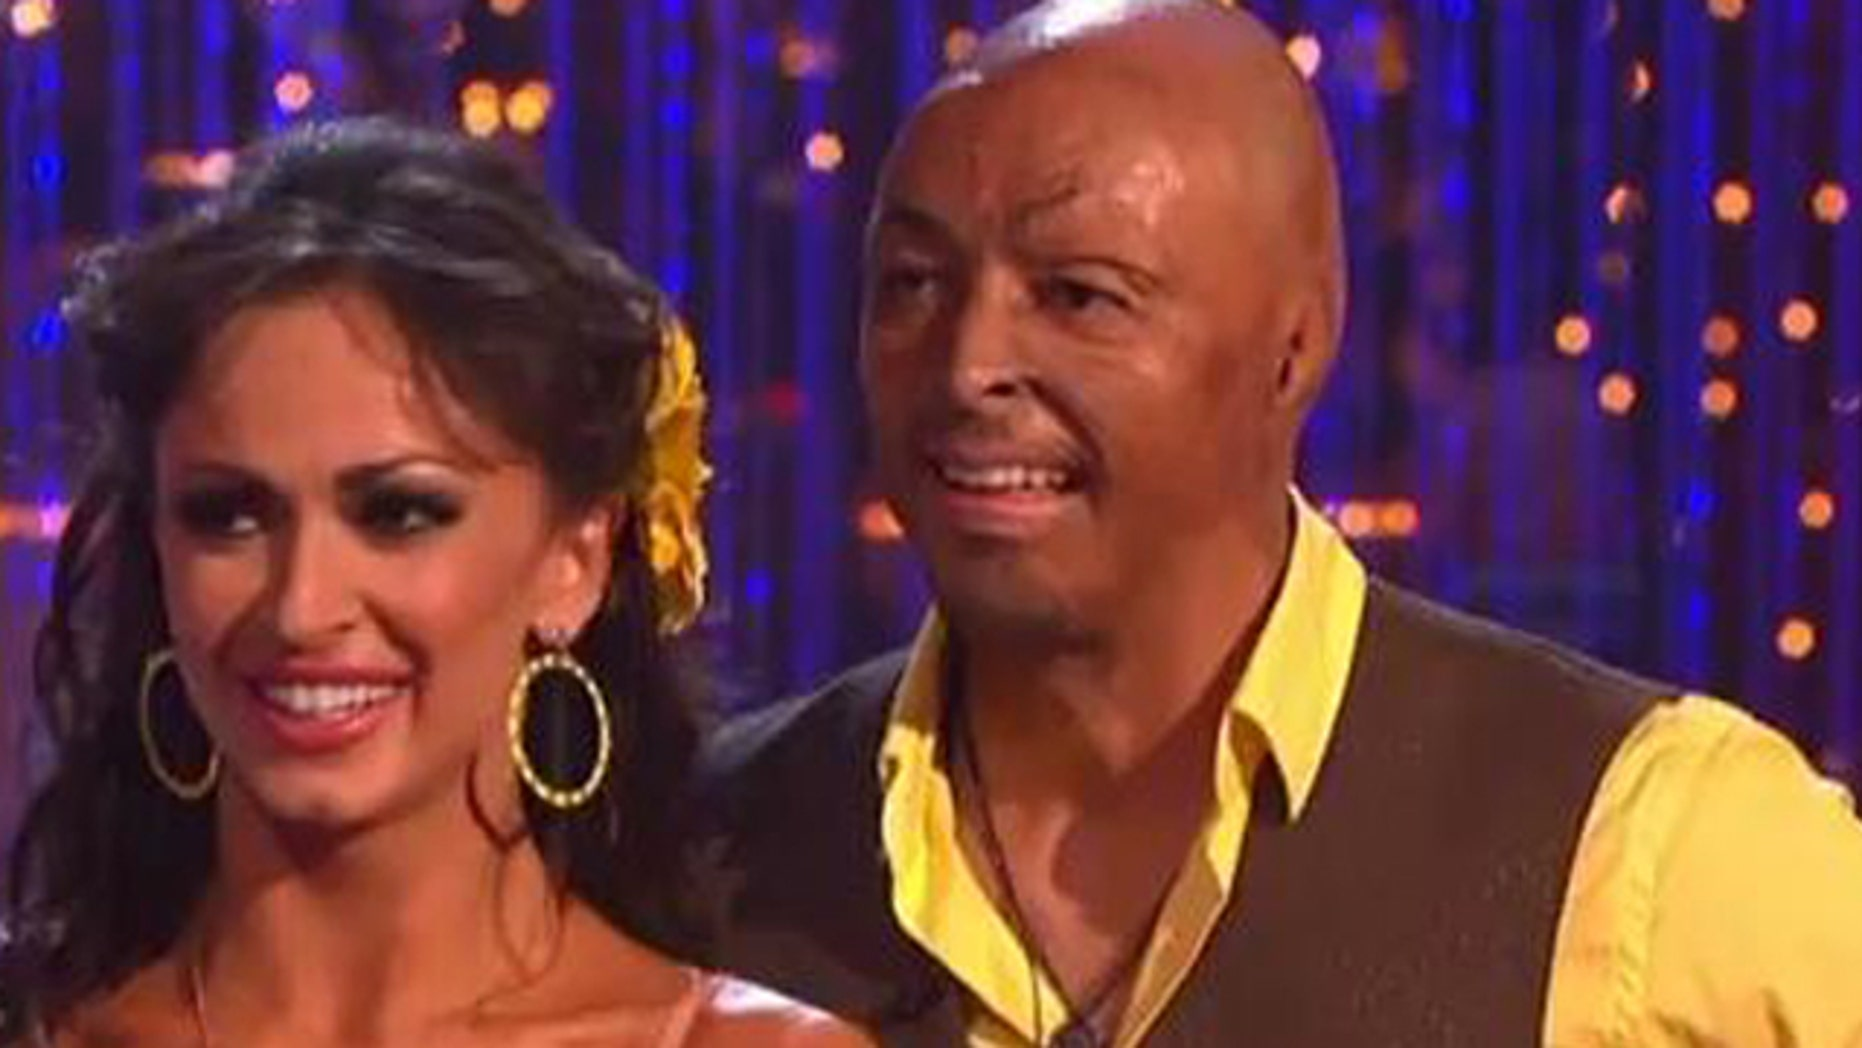 """Nov. 21, 2011: J.R. Martinez and dance partner Karina Smirnoff dance to jennifer Lopez's  """"Let's Get Loud"""" during the finals for Dancing With the Stars Monday night in Los Angeles, Calif."""